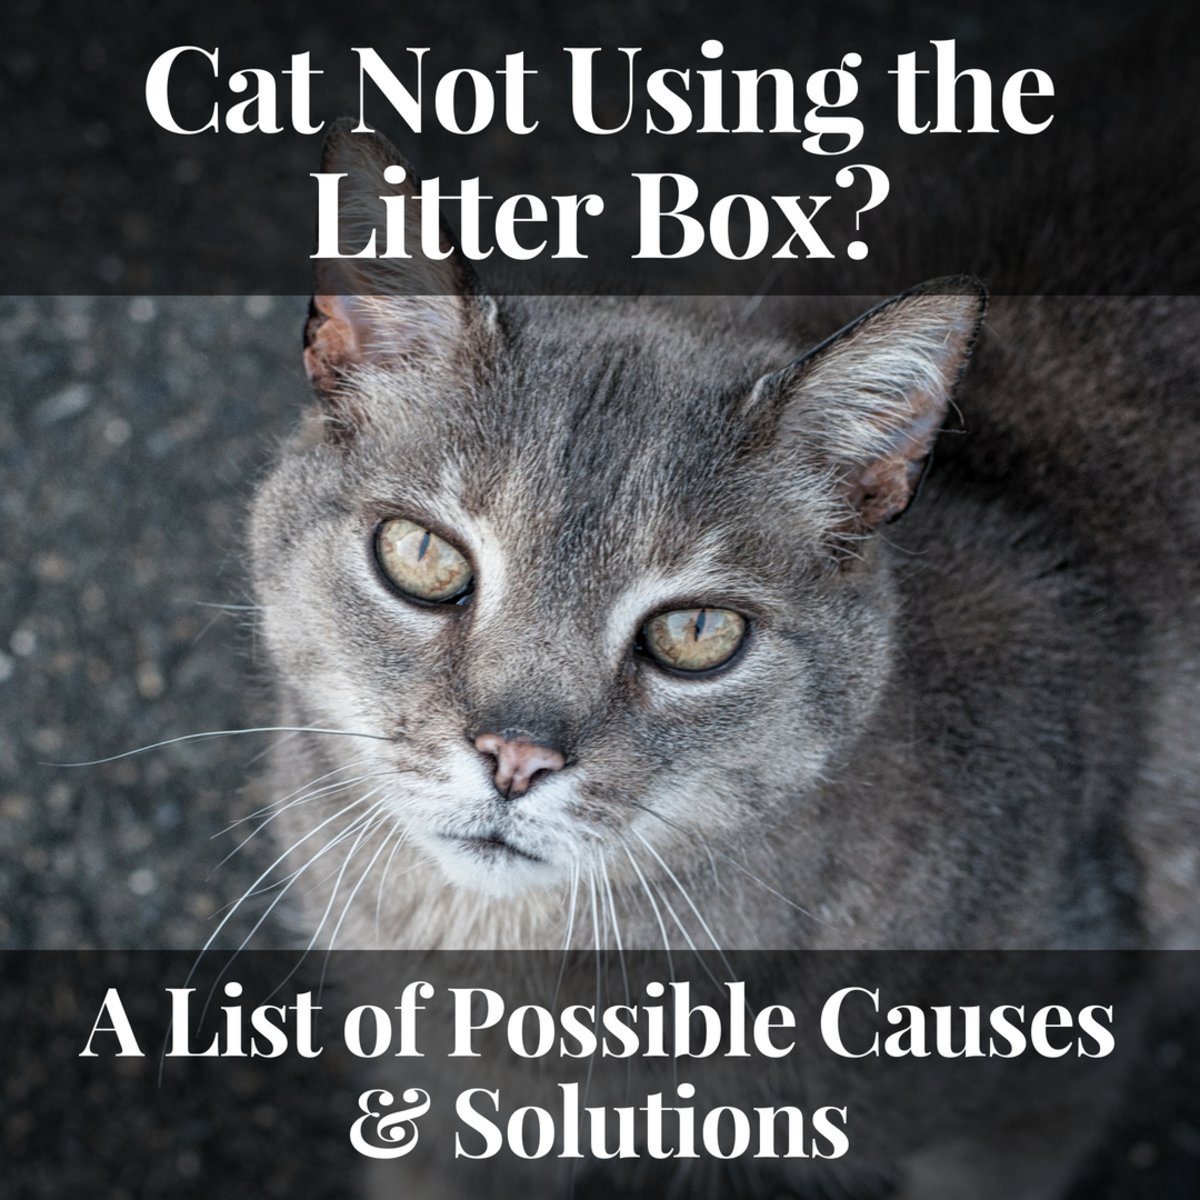 Figuring out why is a cat is not using the litter box is the first step to solving the problem.